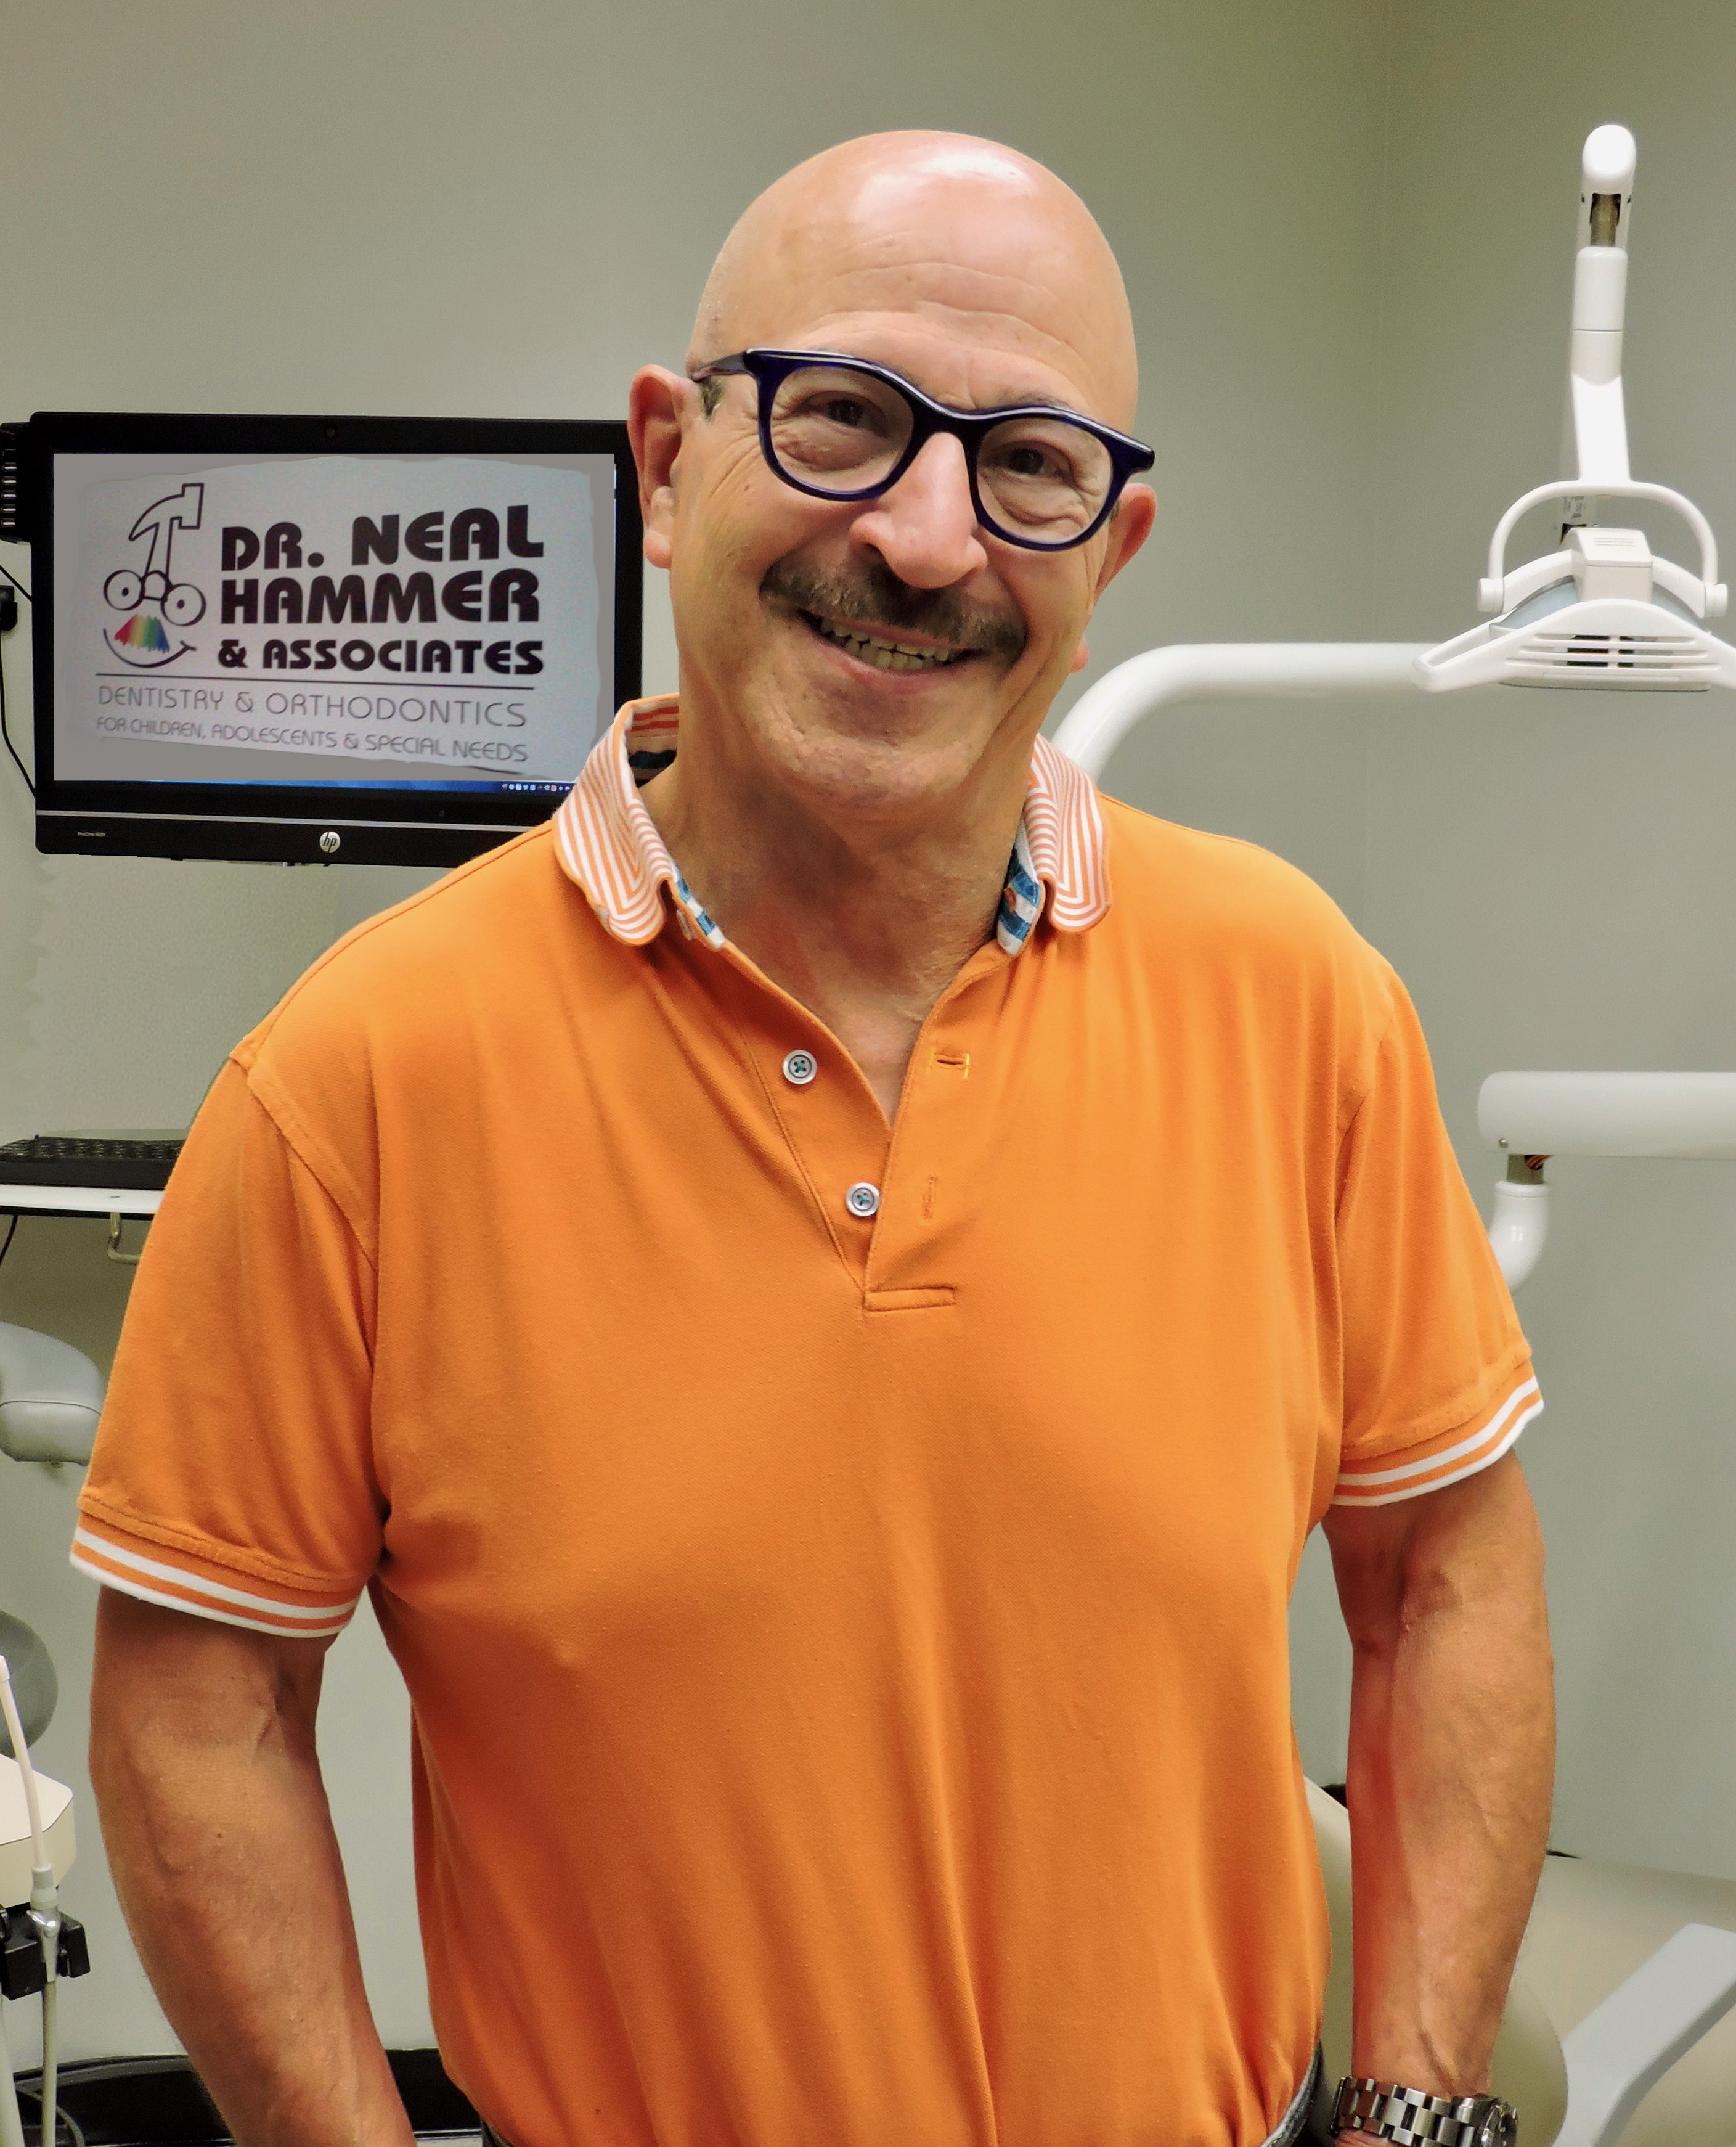 Dr. Neal Hammer at Family Dentistry of New Jersey